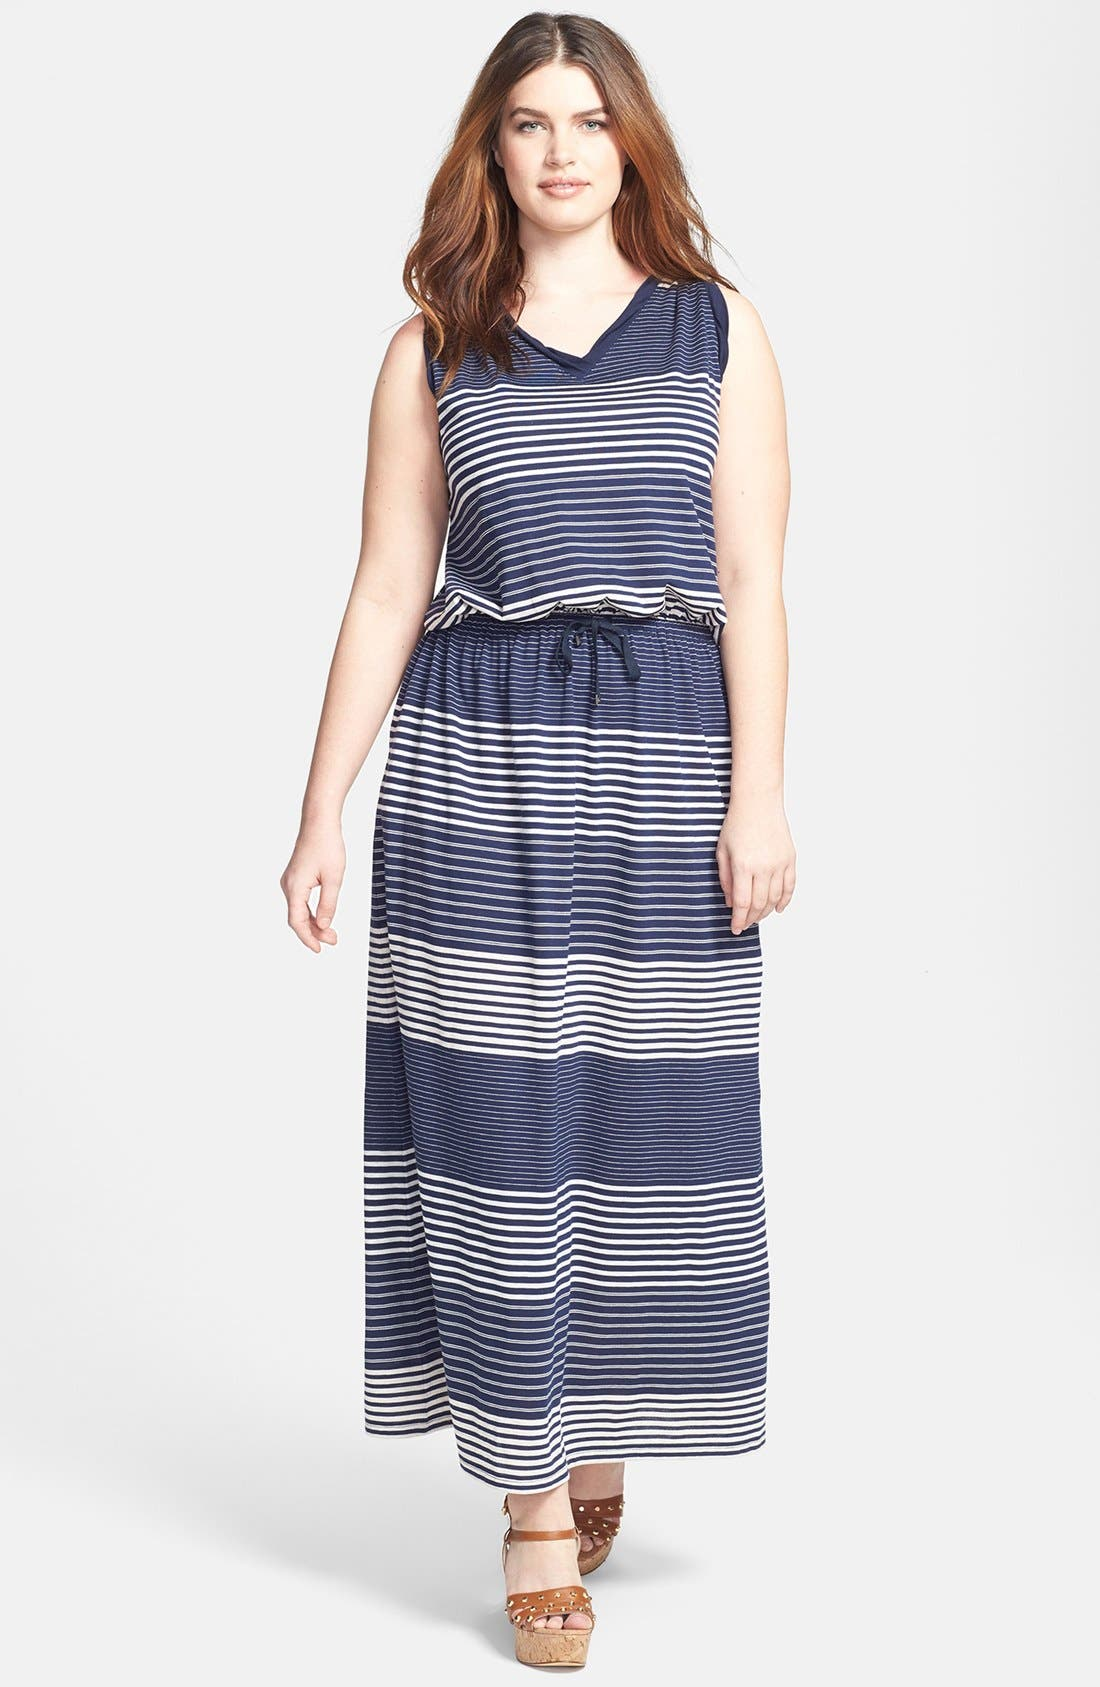 Main Image - Two by Vince Camuto Engineered Stripe Sleeveless Maxi Dress (Plus Size)